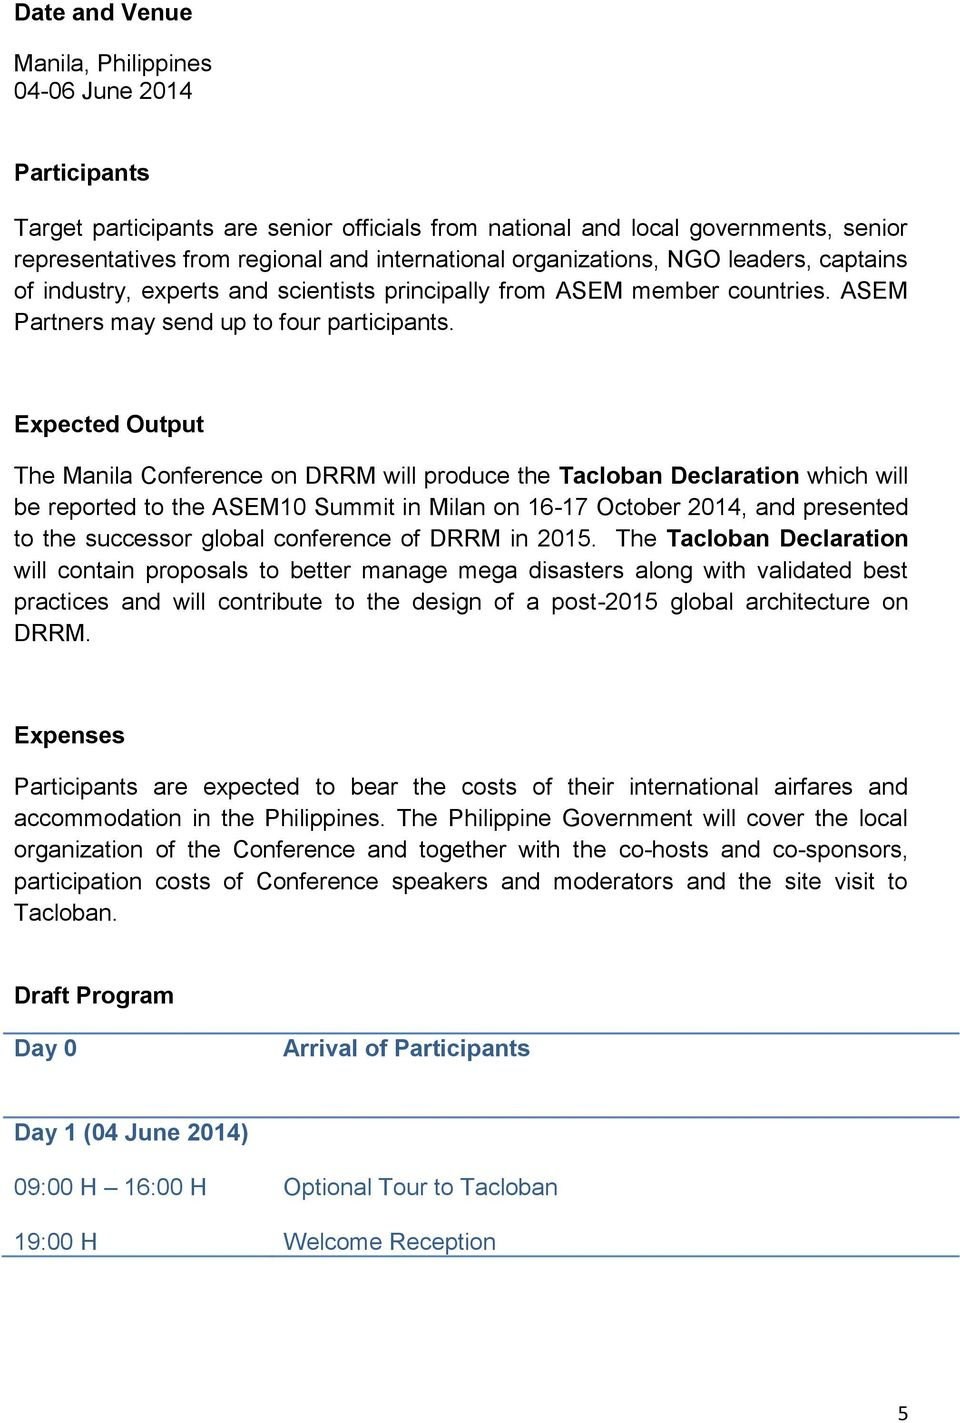 Expected Output The Manila Conference on DRRM will produce the Tacloban Declaration which will be reported to the ASEM10 Summit in Milan on 16-17 October 2014, and presented to the successor global